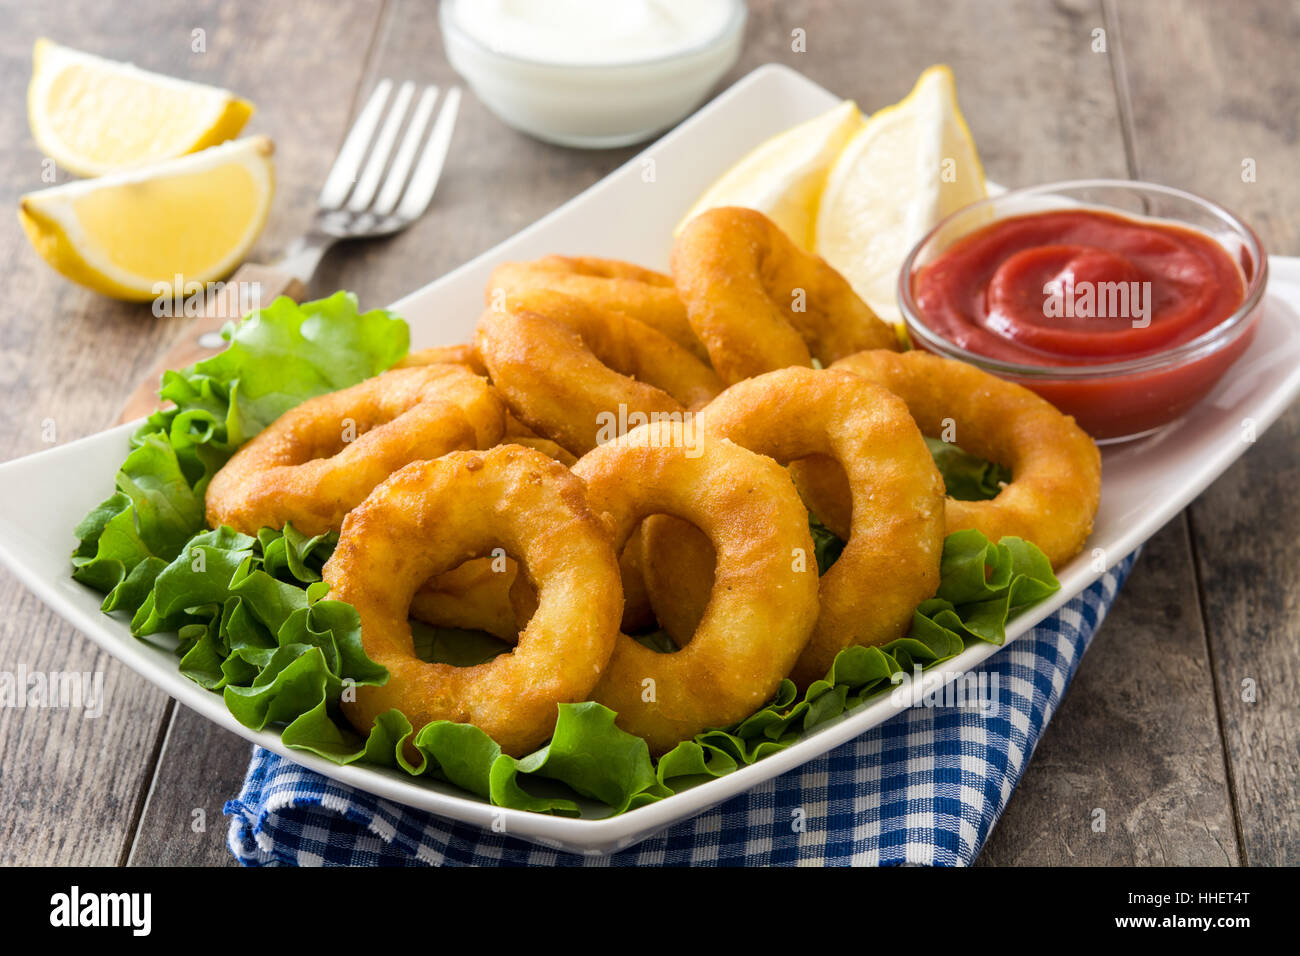 Fried calamari rings with lettuce and ketchup on wooden background - Stock Image